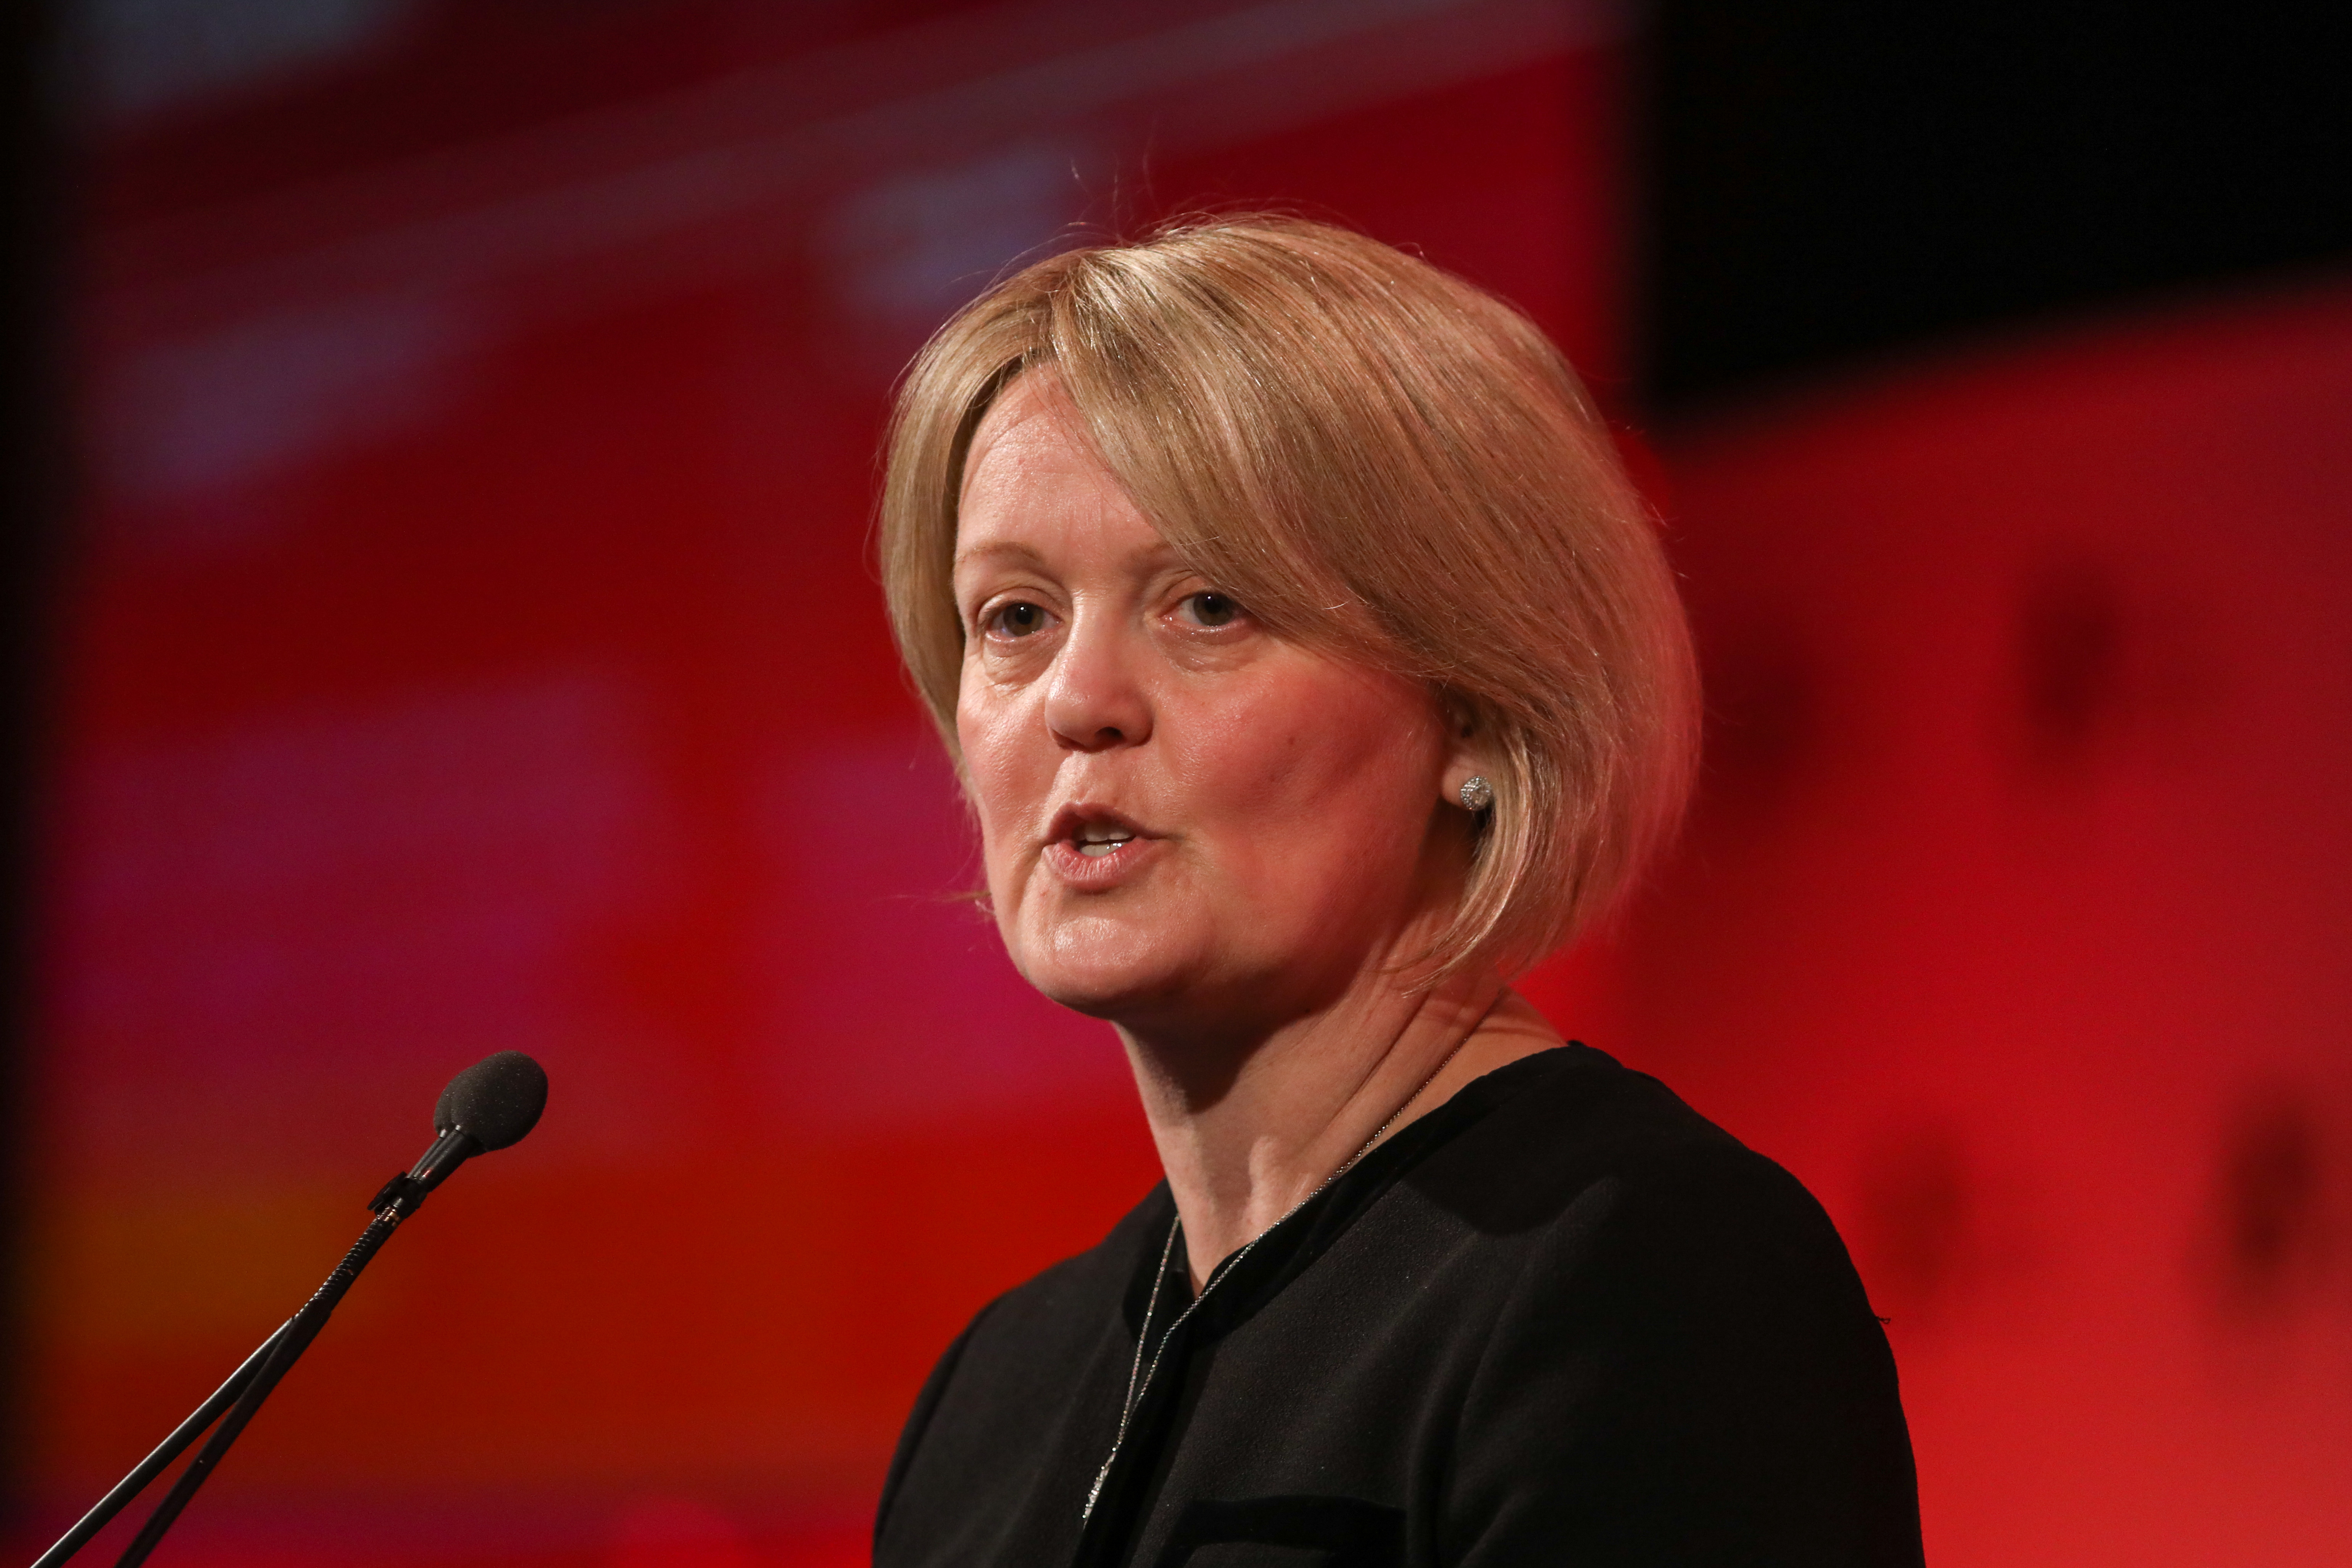 Alison Rose, deputy chief executive officer of Natwest Holdings Ltd., speaks at the British Chambers of Commerce Annual Conference 2019 in London, U.K., on Thursday, March 28, 2019. Last night's stalemate in U.K. Parliament provided little clarity for the countrys equities, with several political options still on the table, strategists and investors say. Photographer: Chris Ratcliffe/Bloomberg via Getty Images